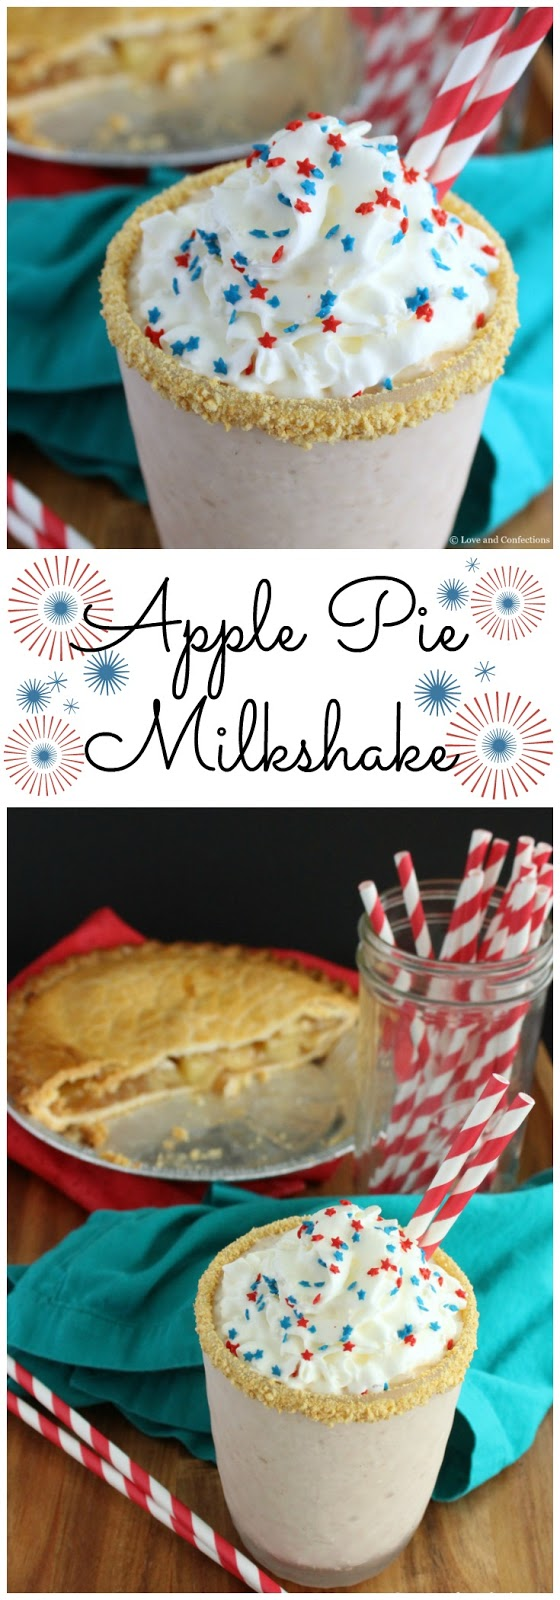 Apple Pie Milkshakes by LoveandConfections.com